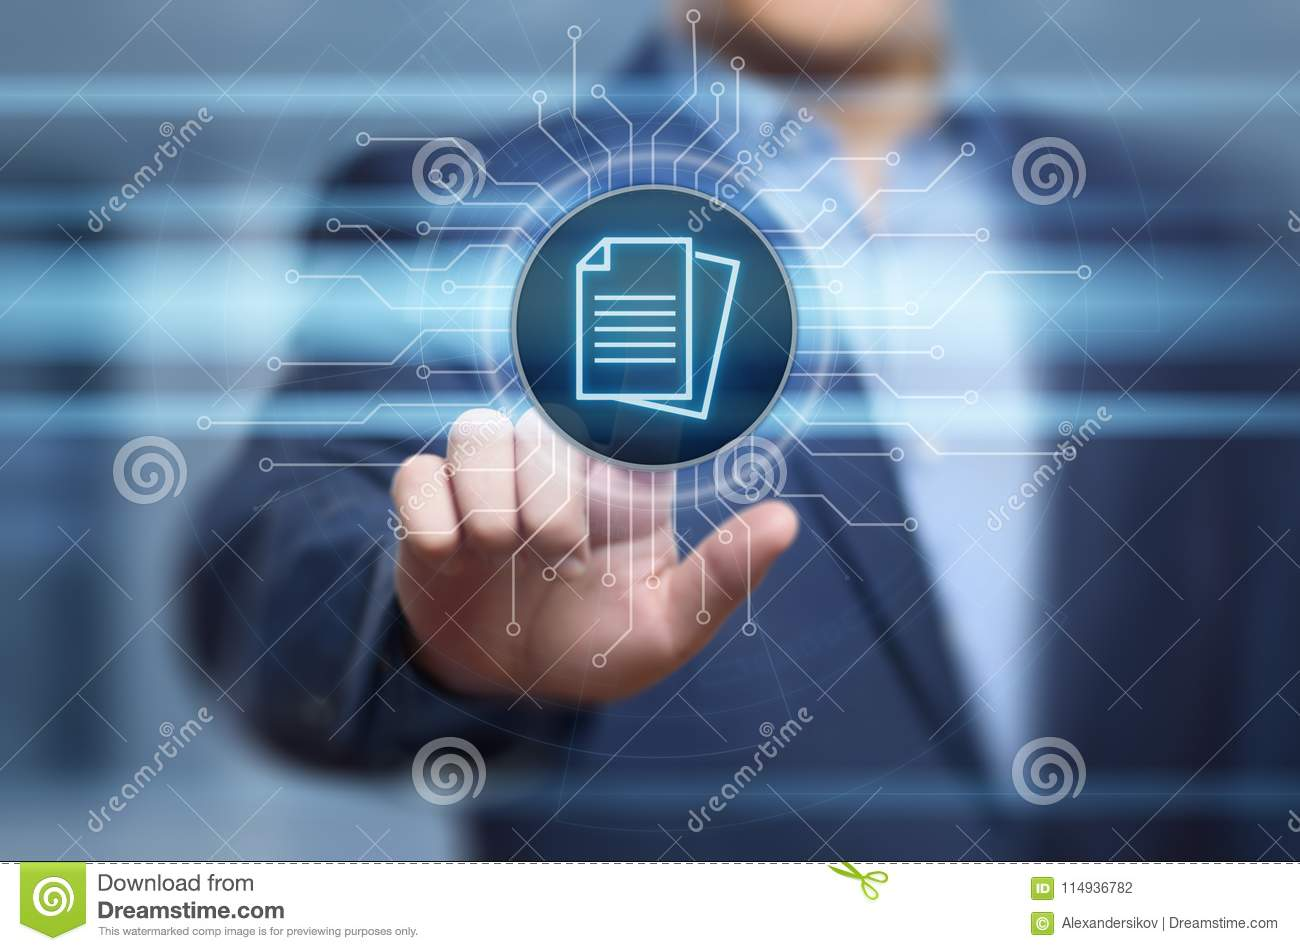 Document Management Data System Business Internet Technology Concept